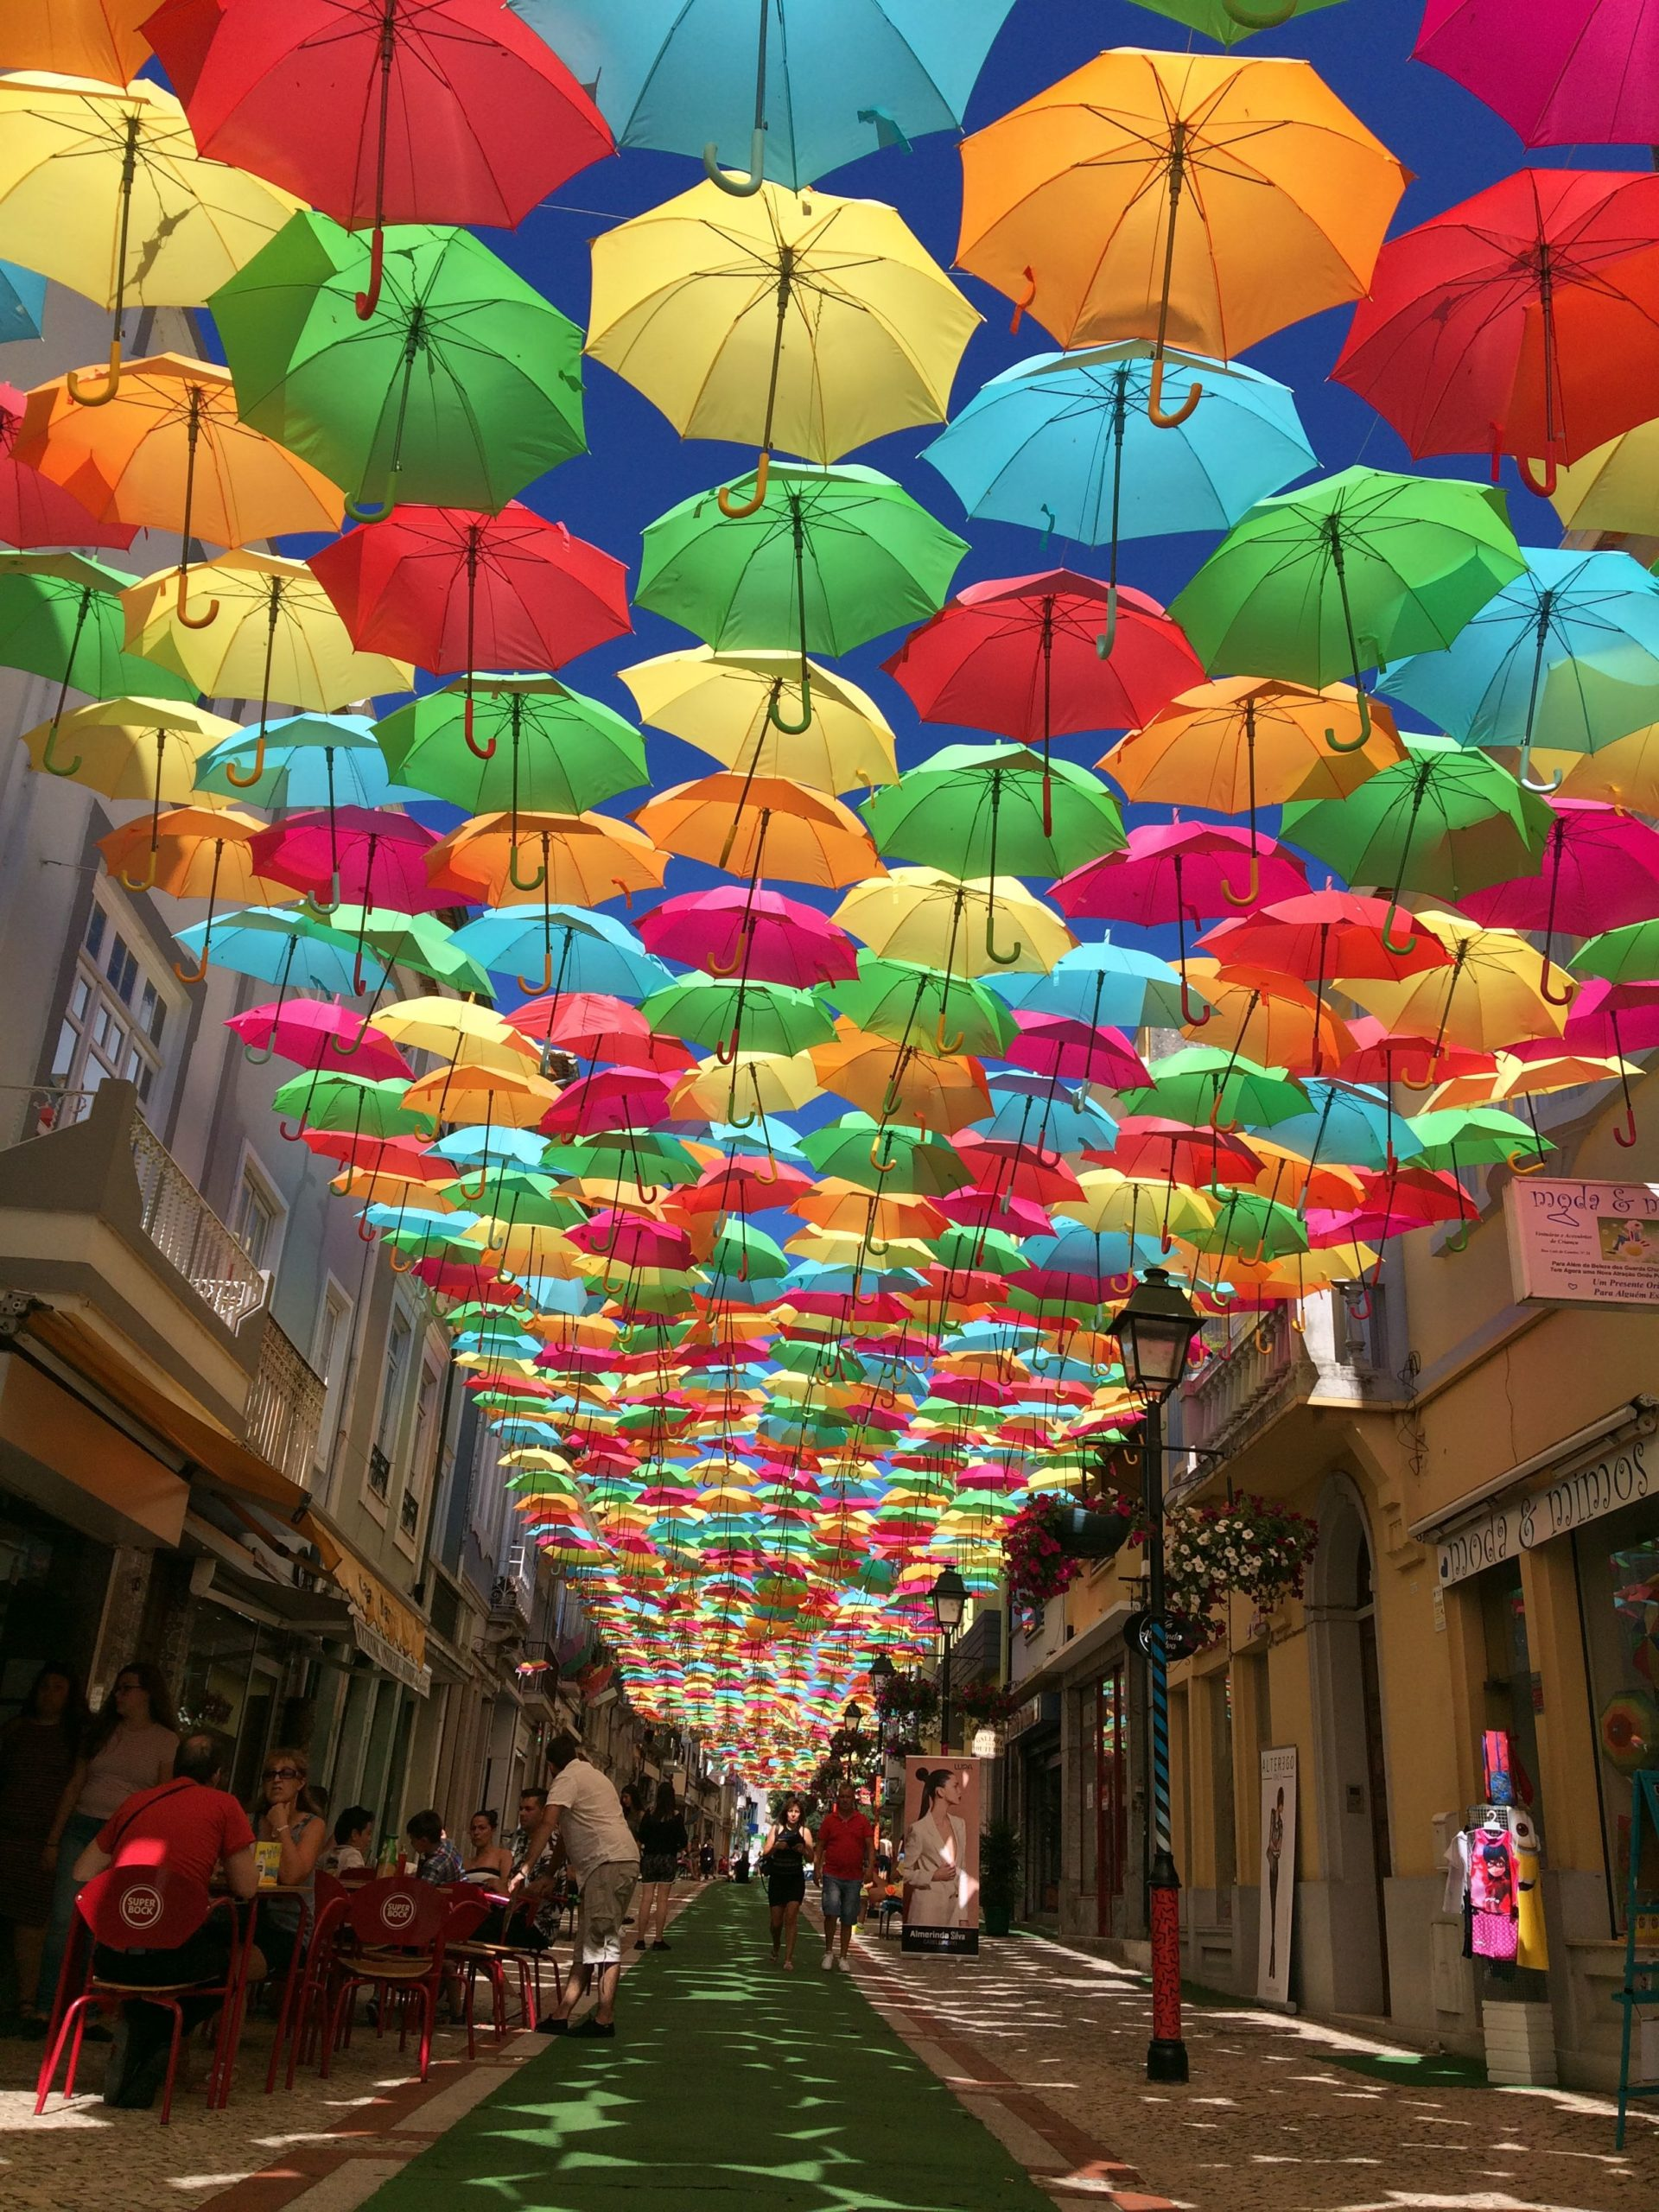 Umbrella Sky Project, Агеда, Португалия